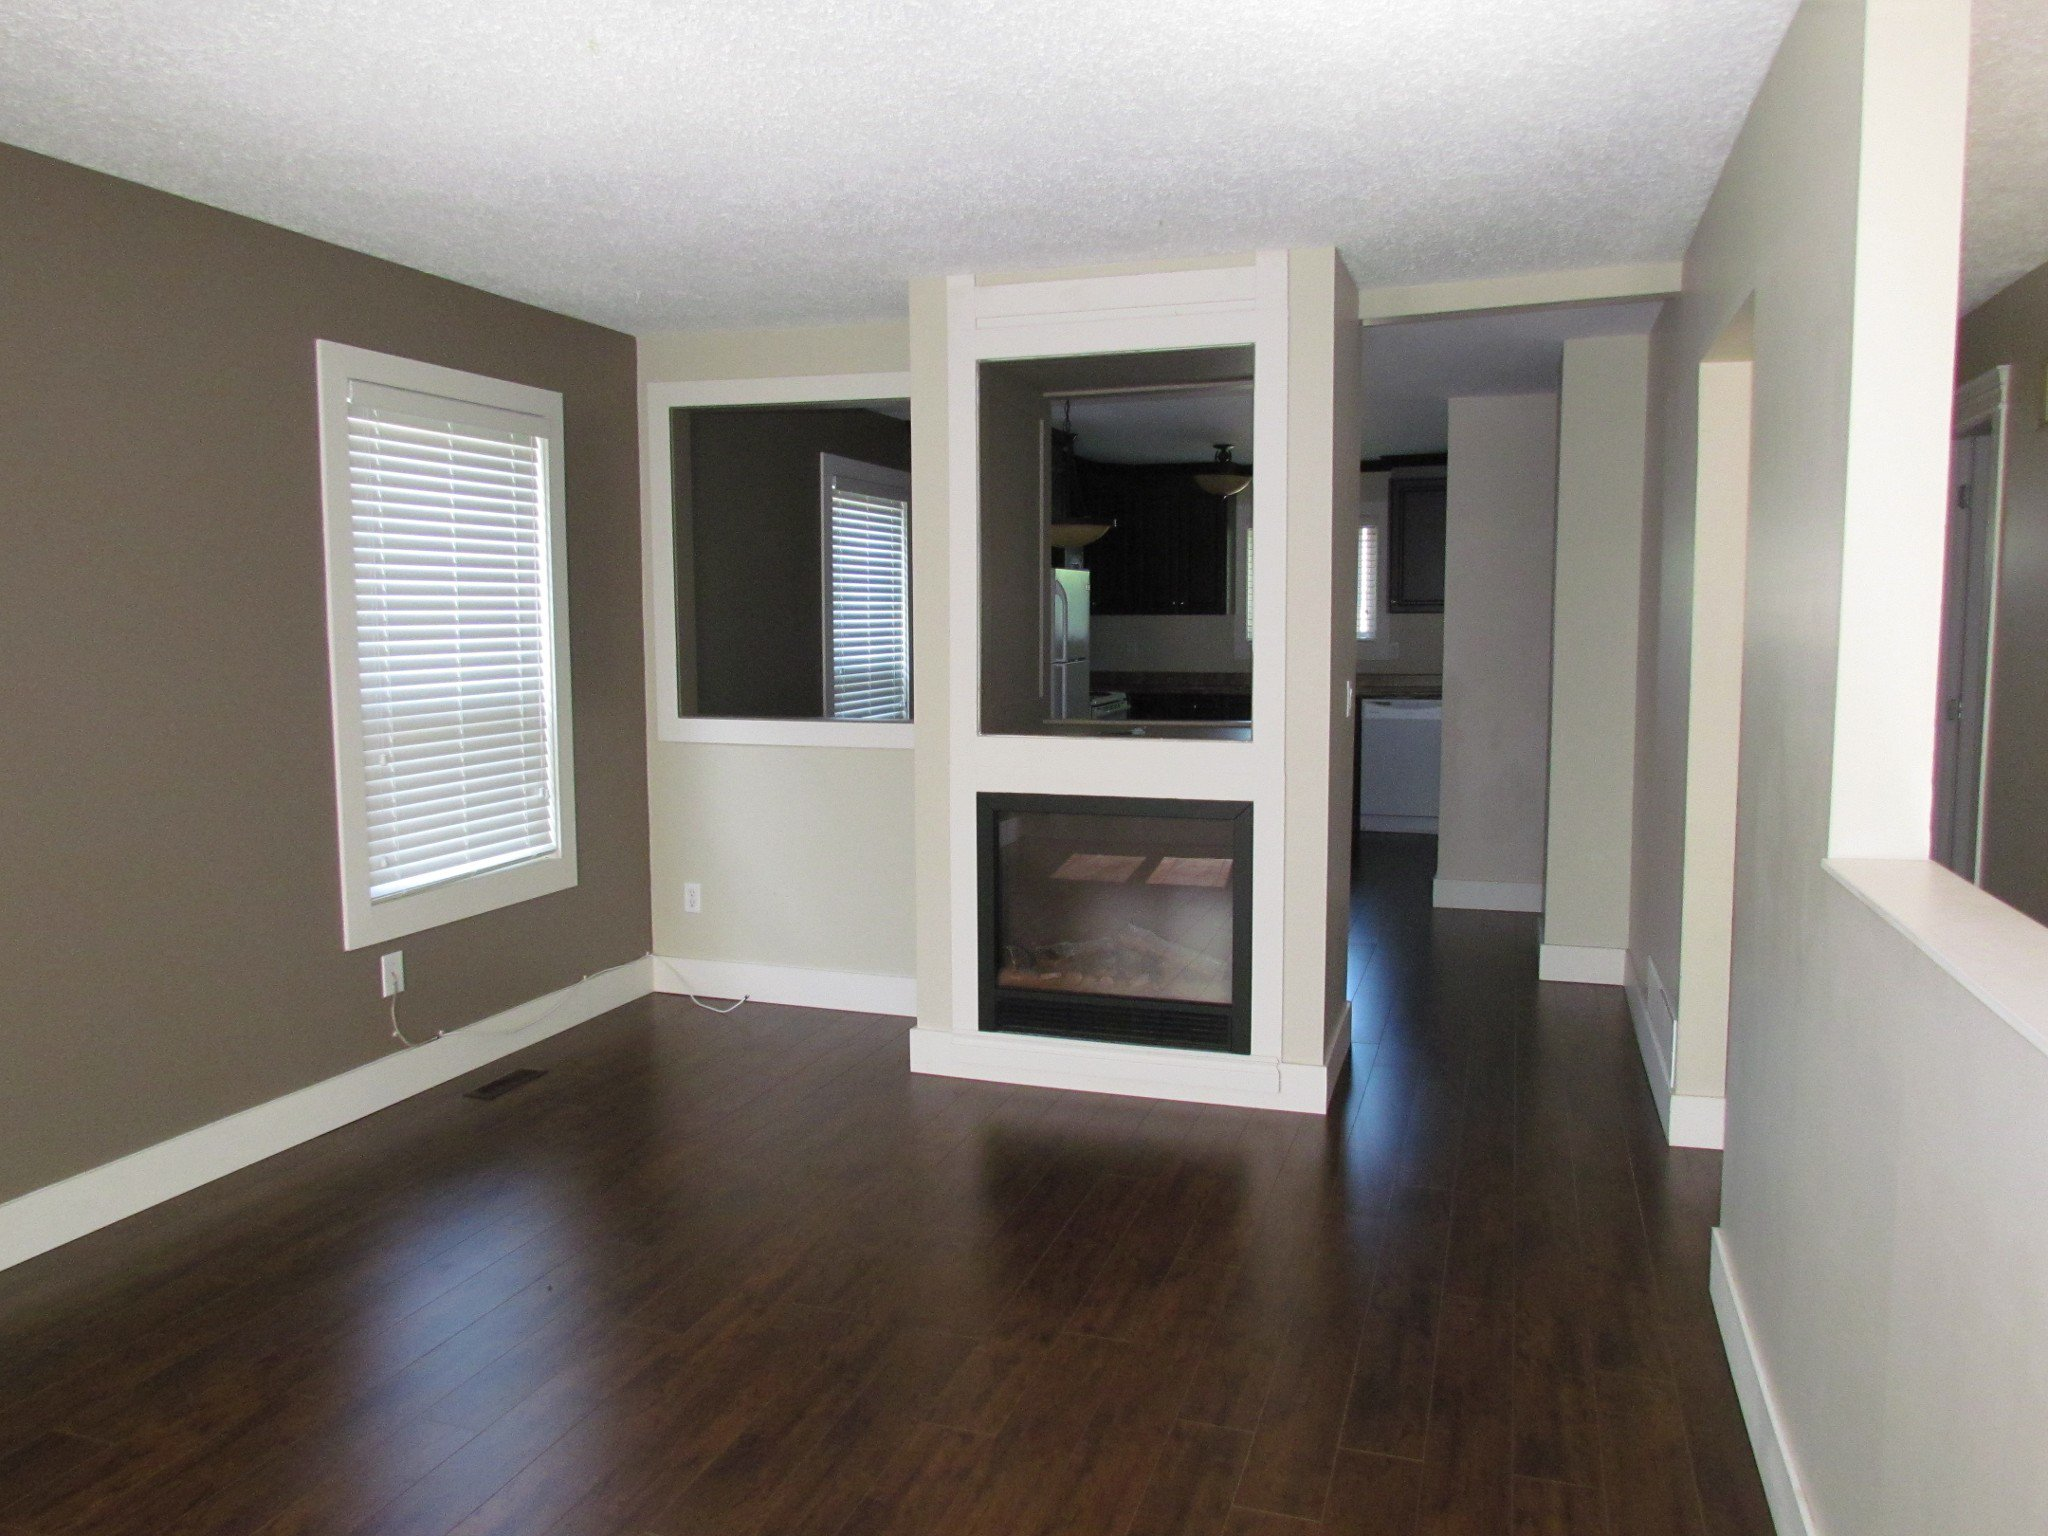 Photo 3: Photos: 3465 Juniper Cr. in Abbotsford: Abbotsford East House for rent